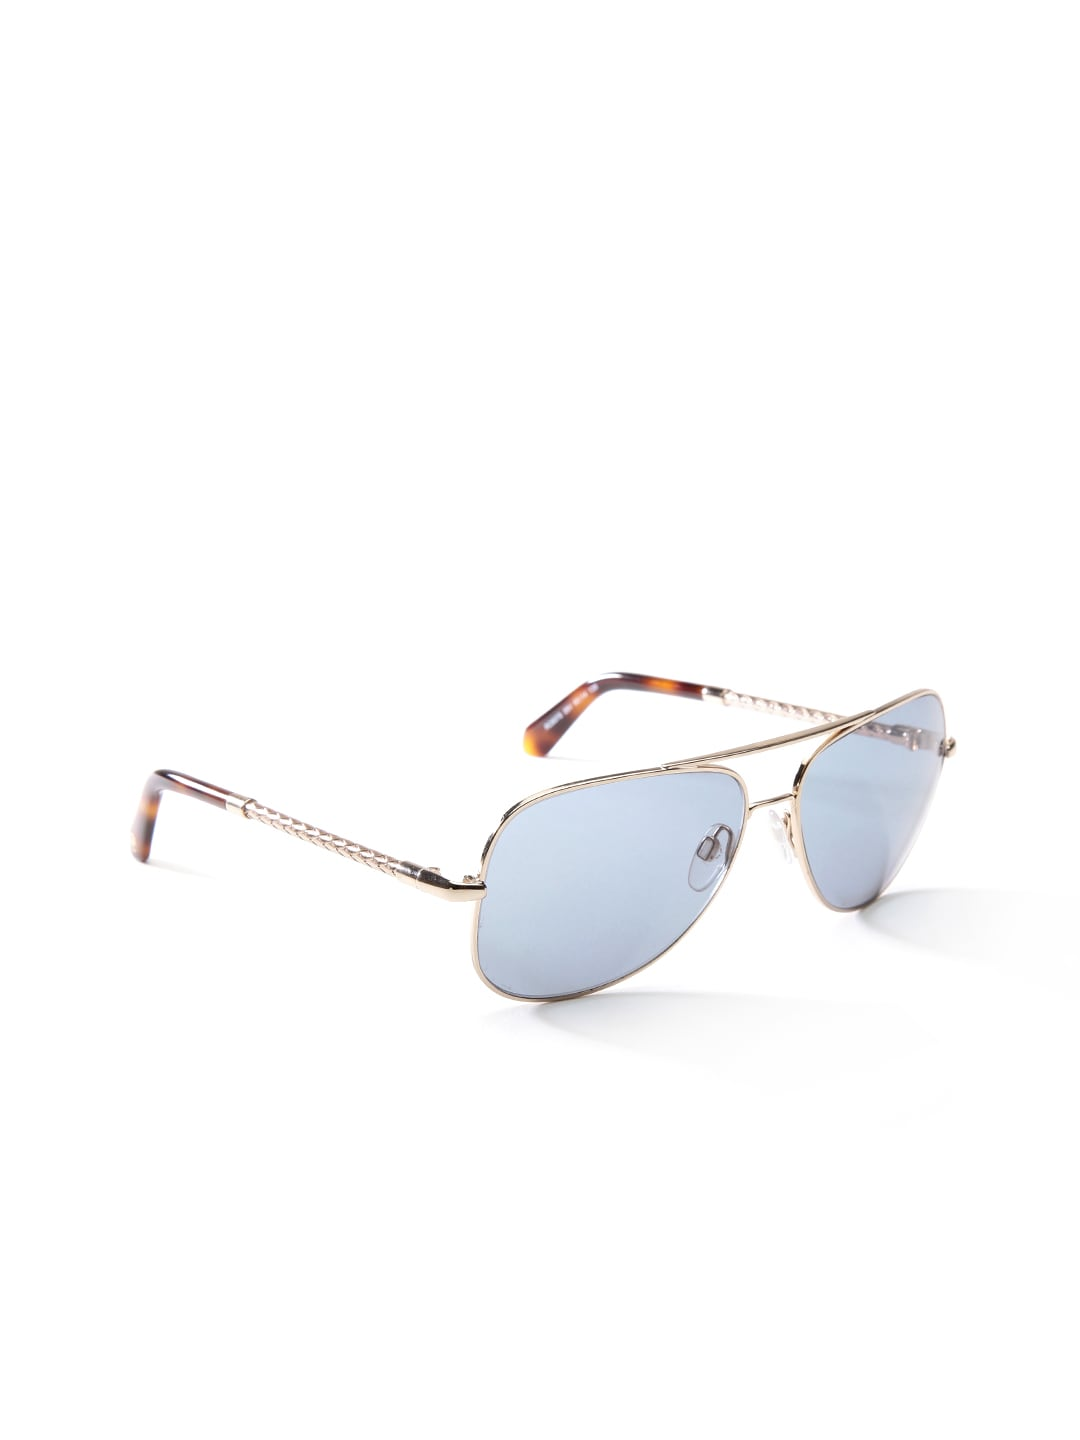 Roberto Cavalli Women Aviator Sunglasses RC837S 28V